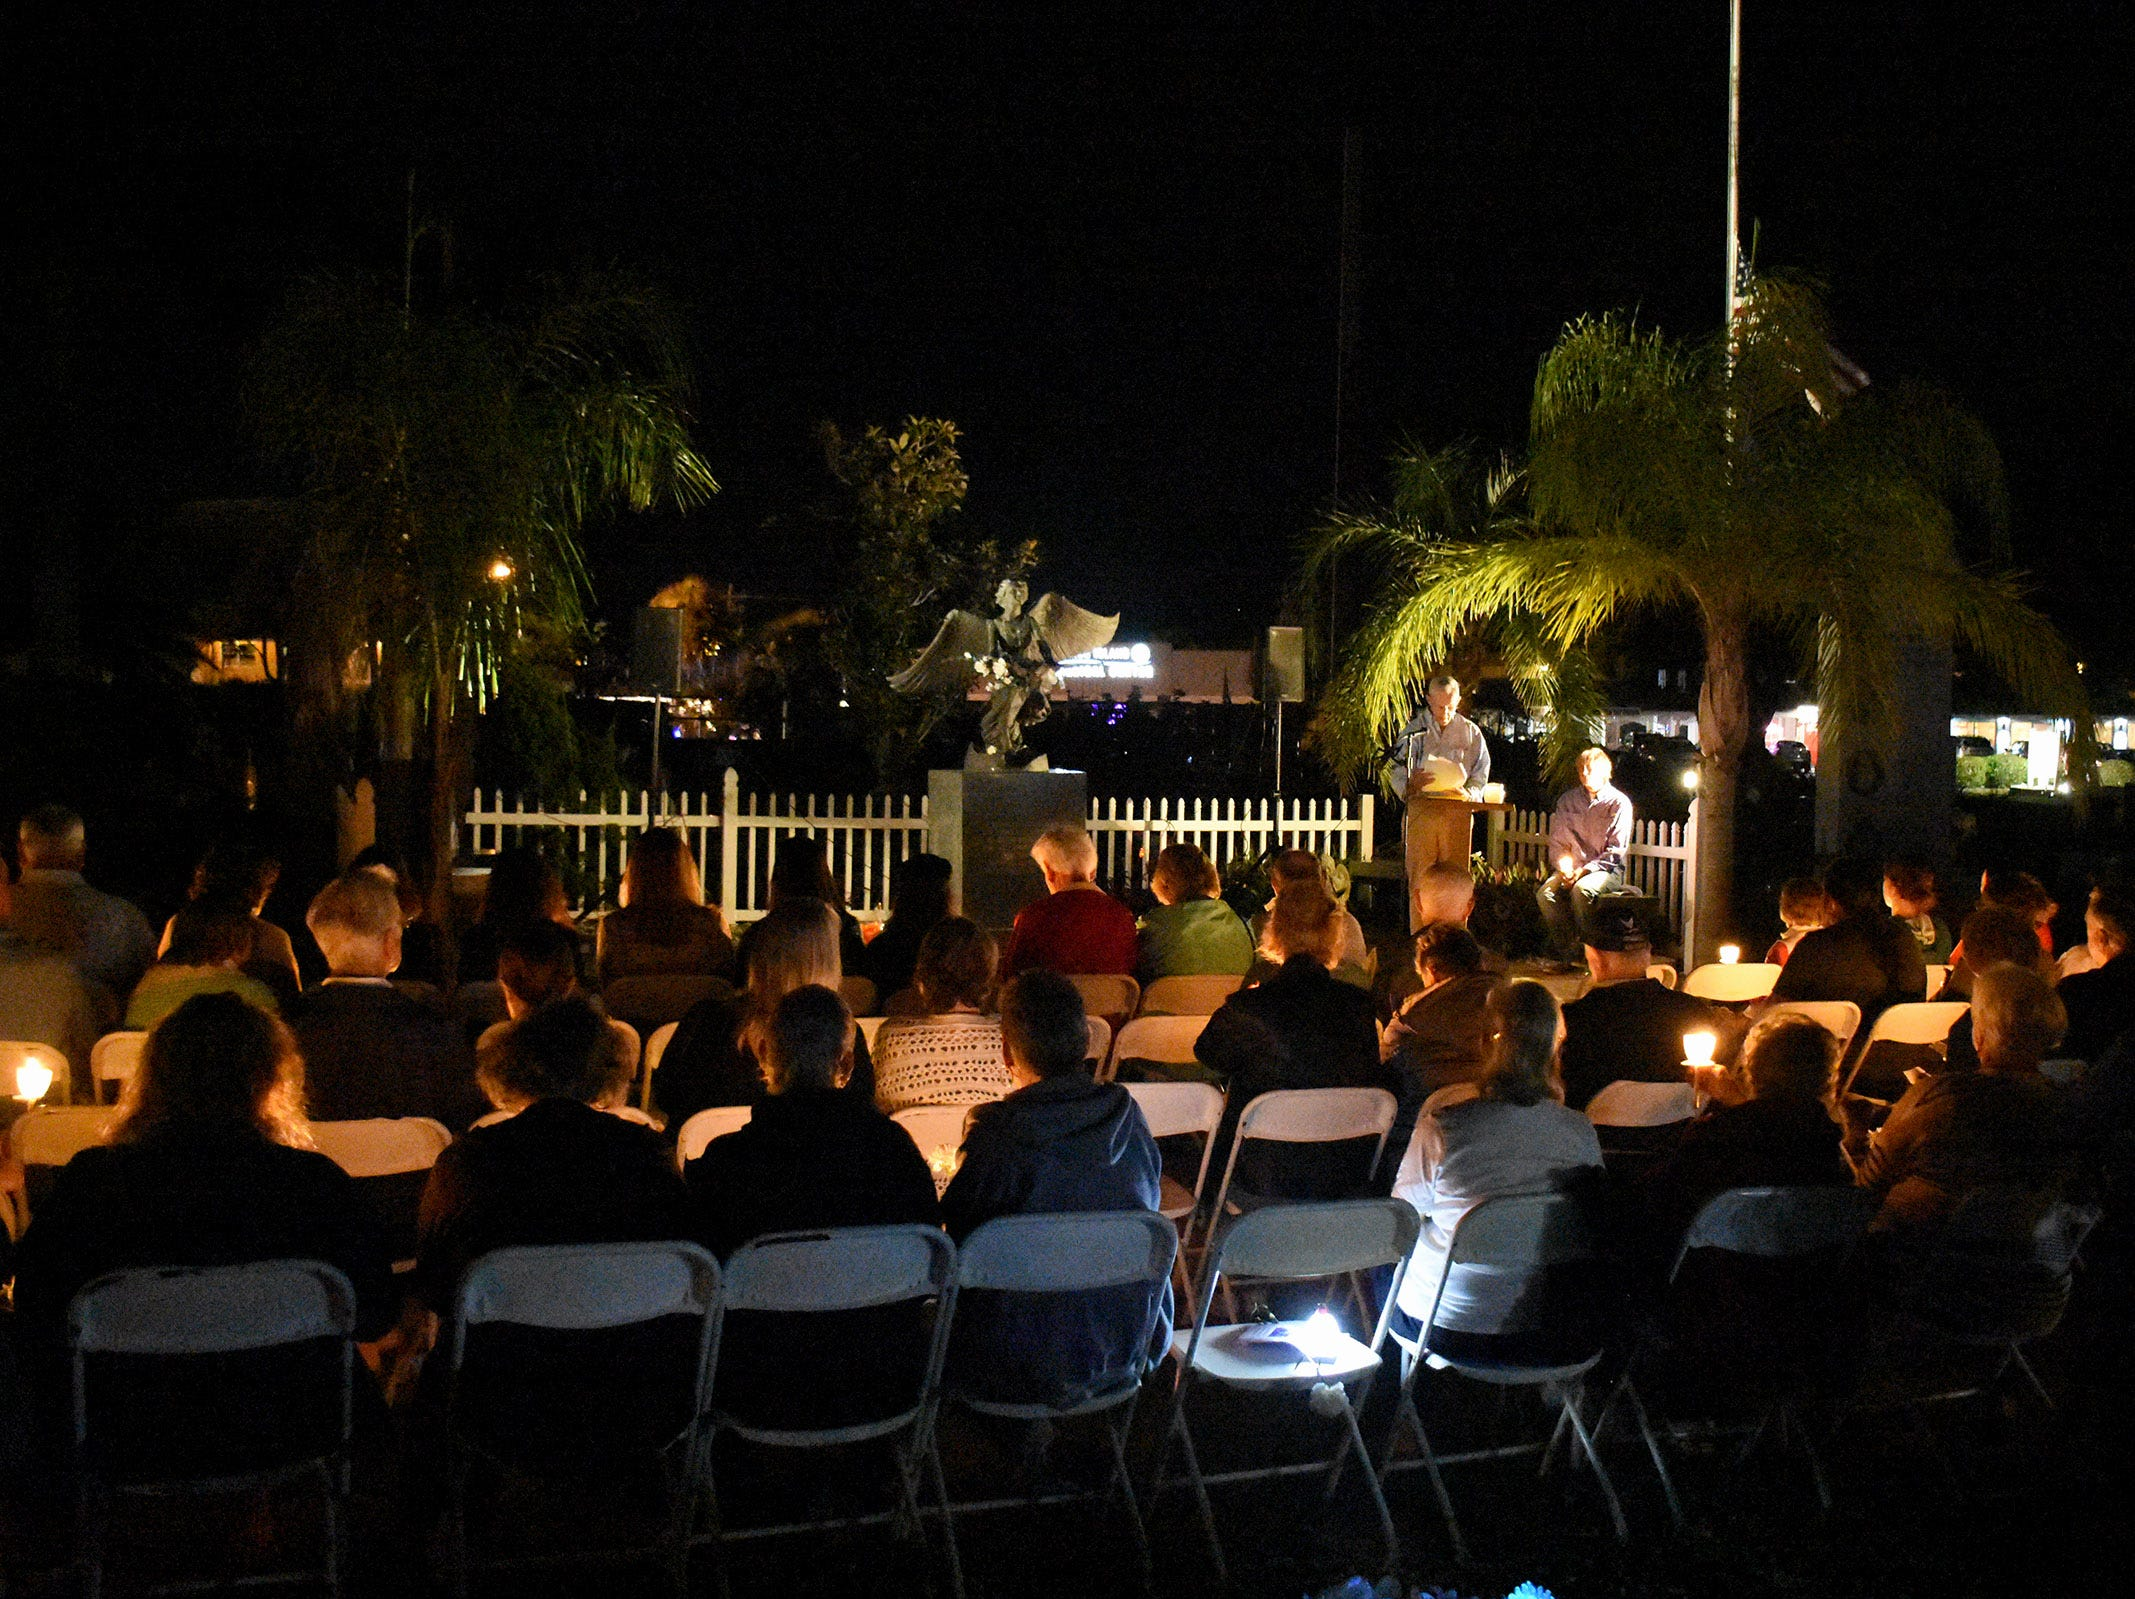 The Marco Island Christmas Box Angel Memorial Service, commemorating children and grandchildren who have died, was held Thursday evening at Marco Island Cemetery.